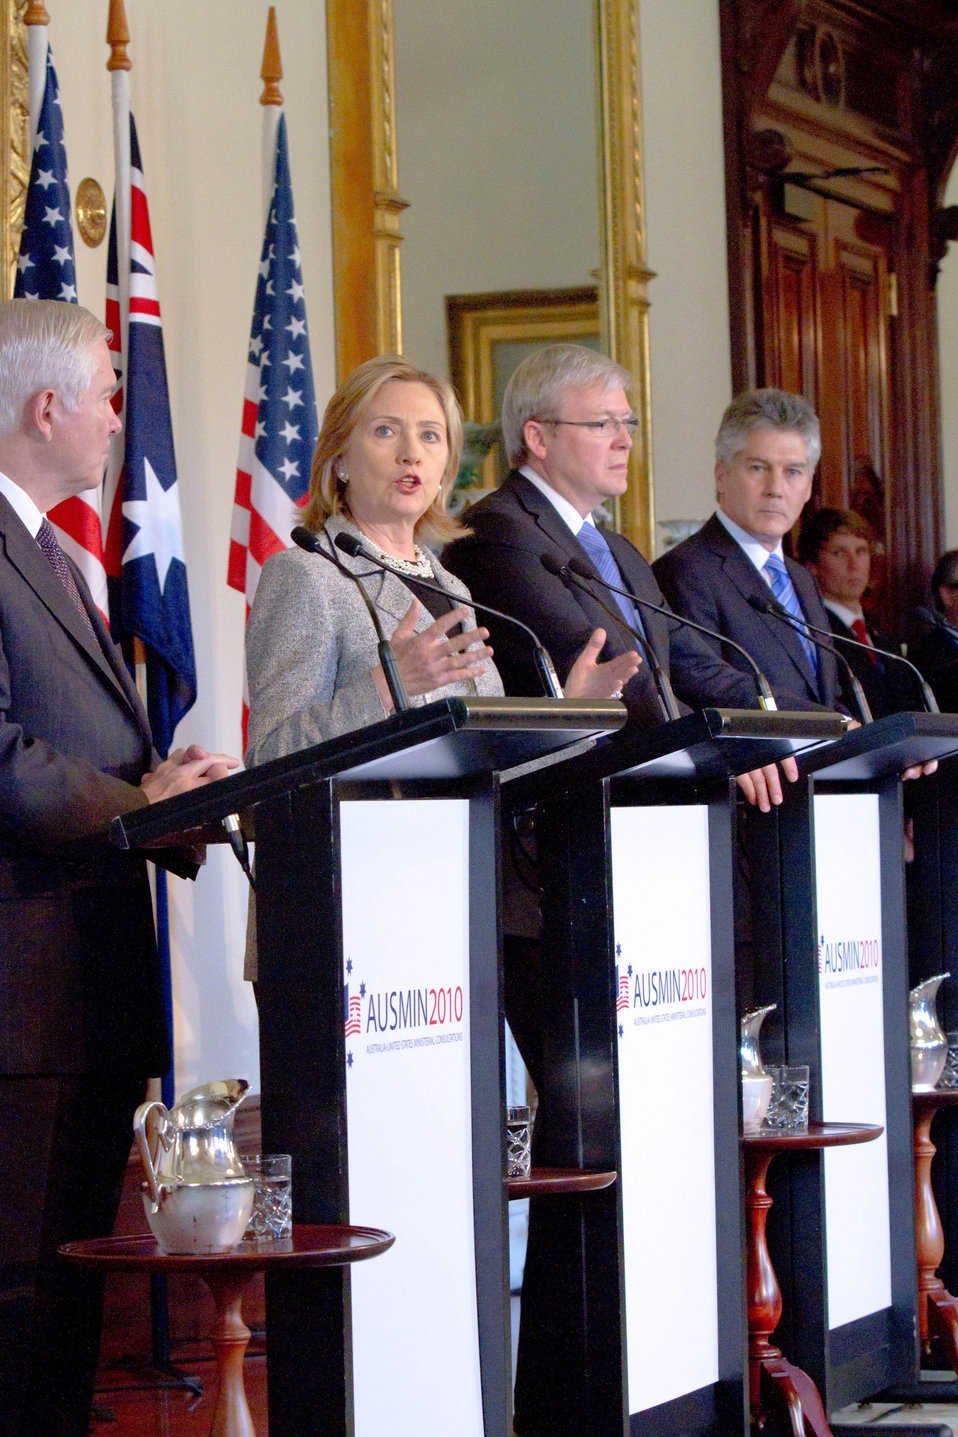 Secretary Clinton Speaks at the AUSMIN Press Conference